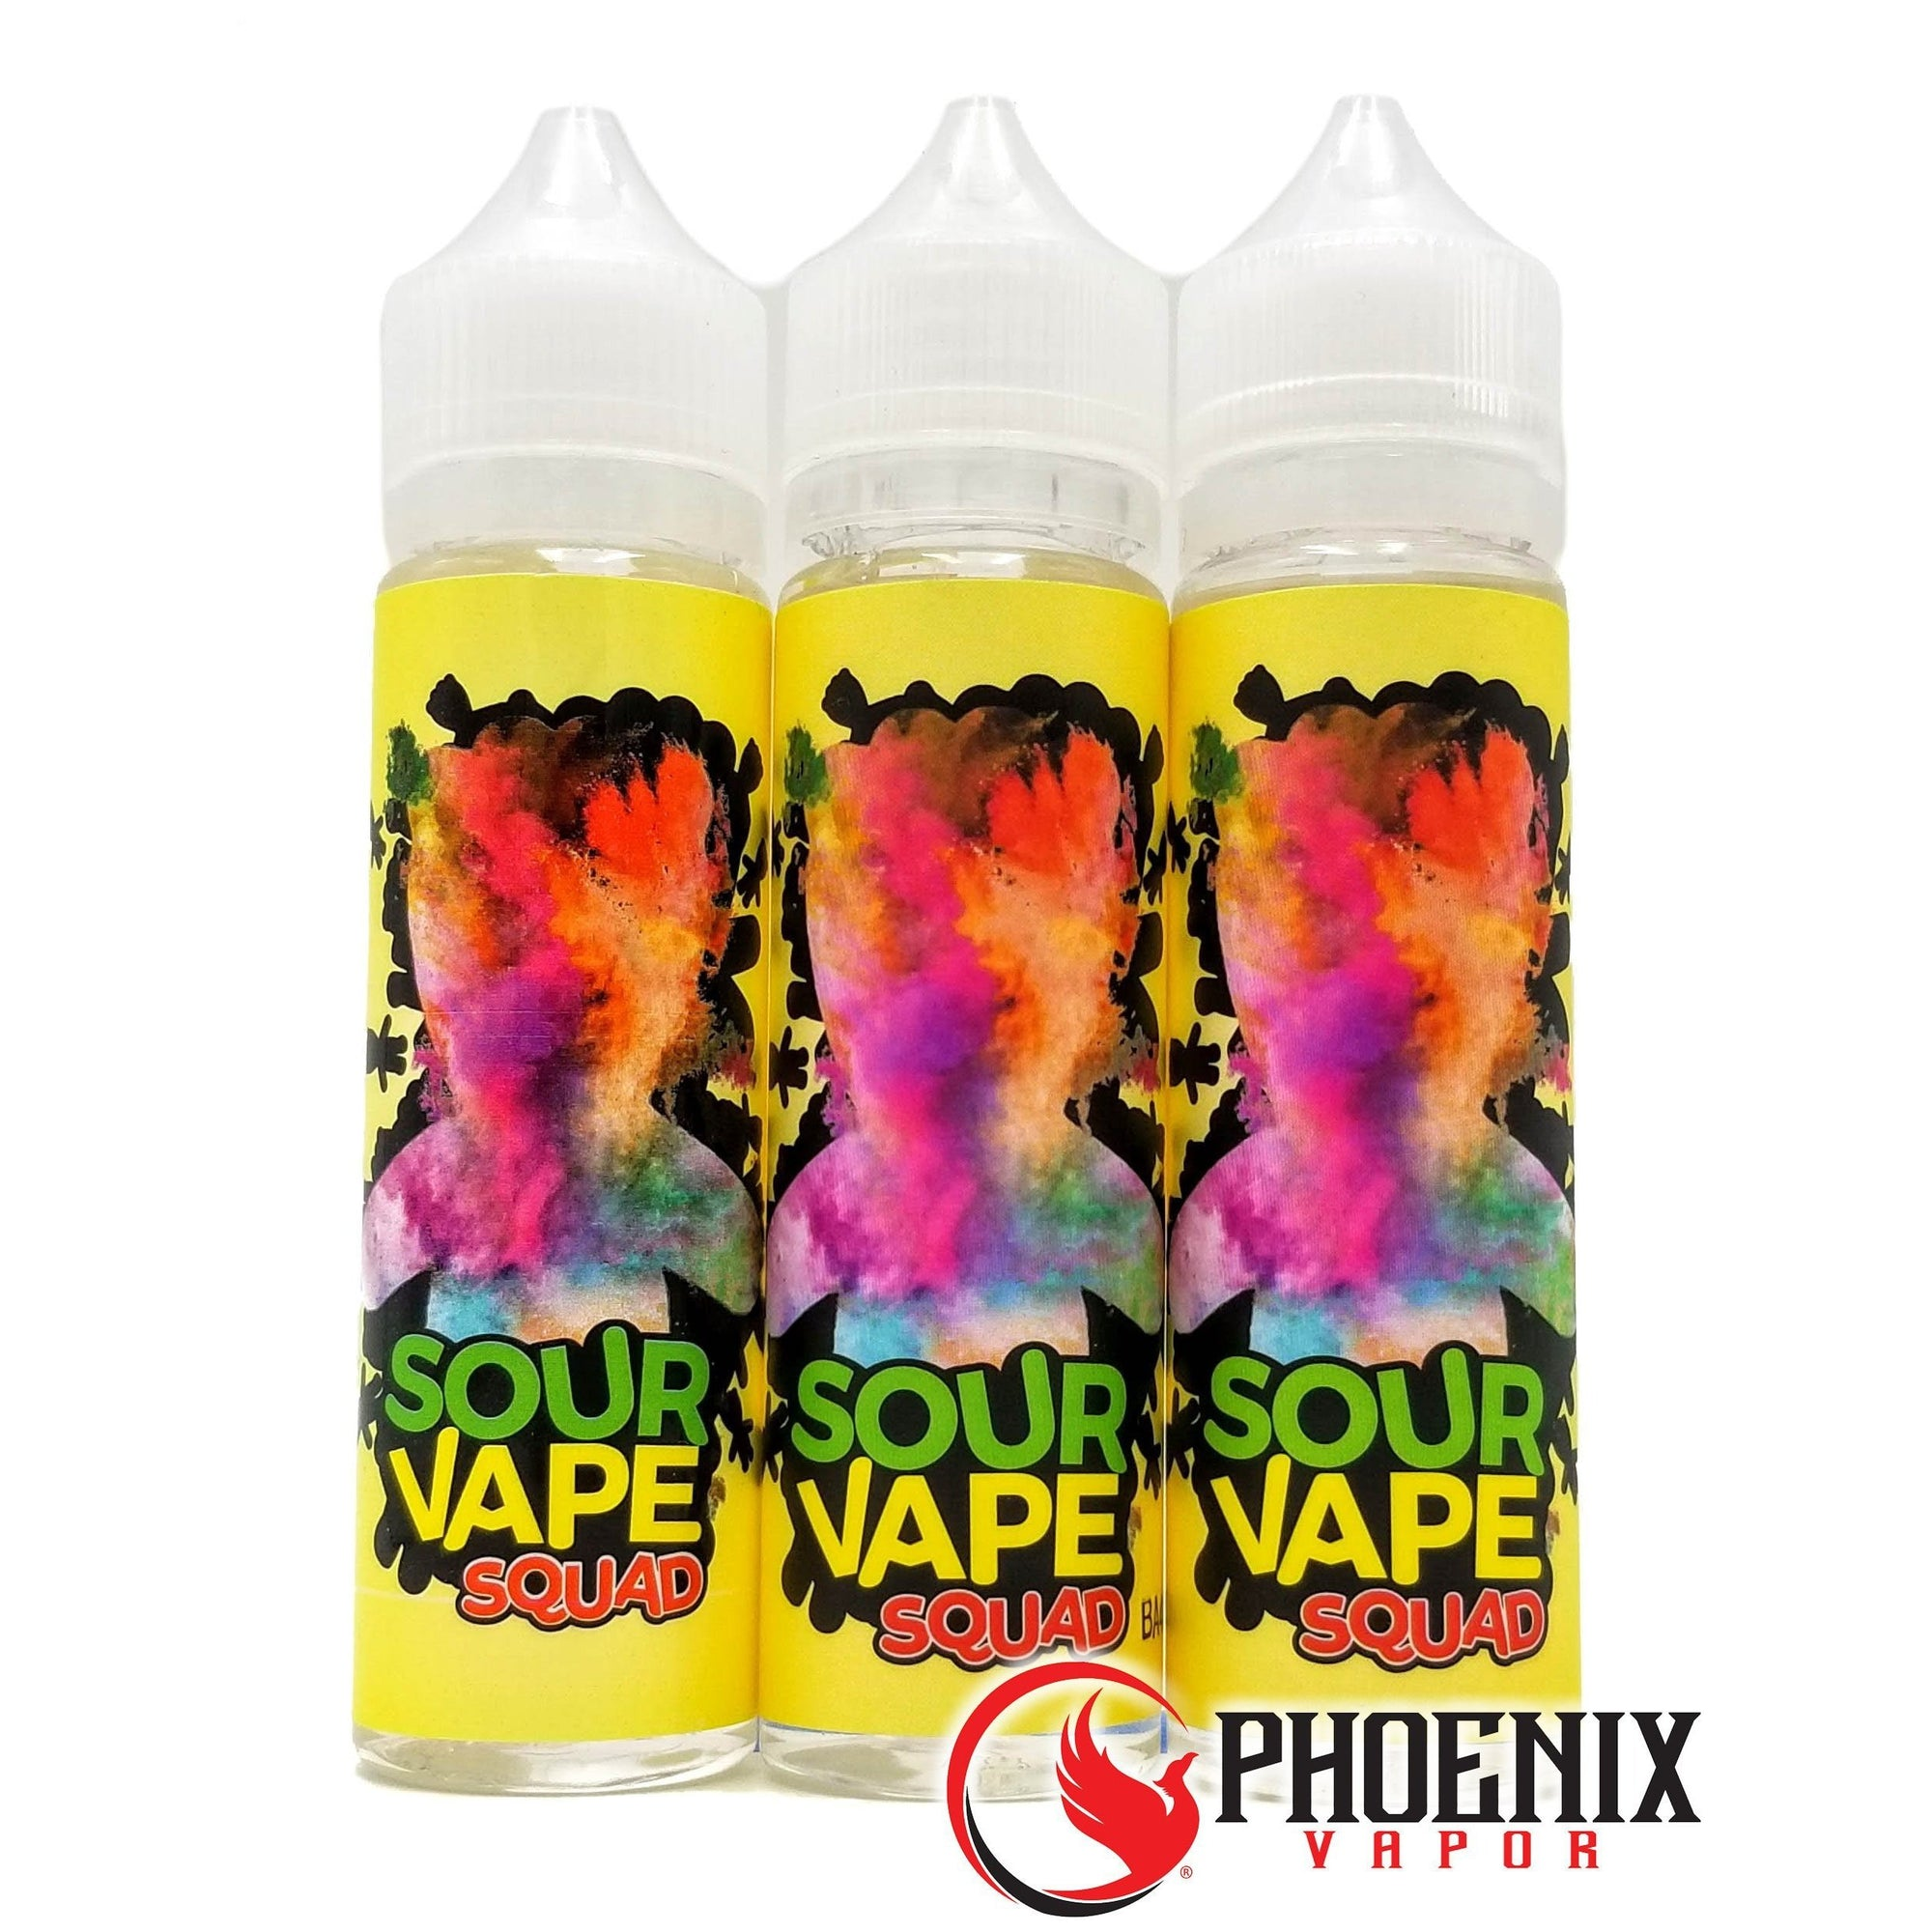 CEO Vape Co E-Liquid 60 ml / 0 mg Sour Vape Squad by CEO Vape Co